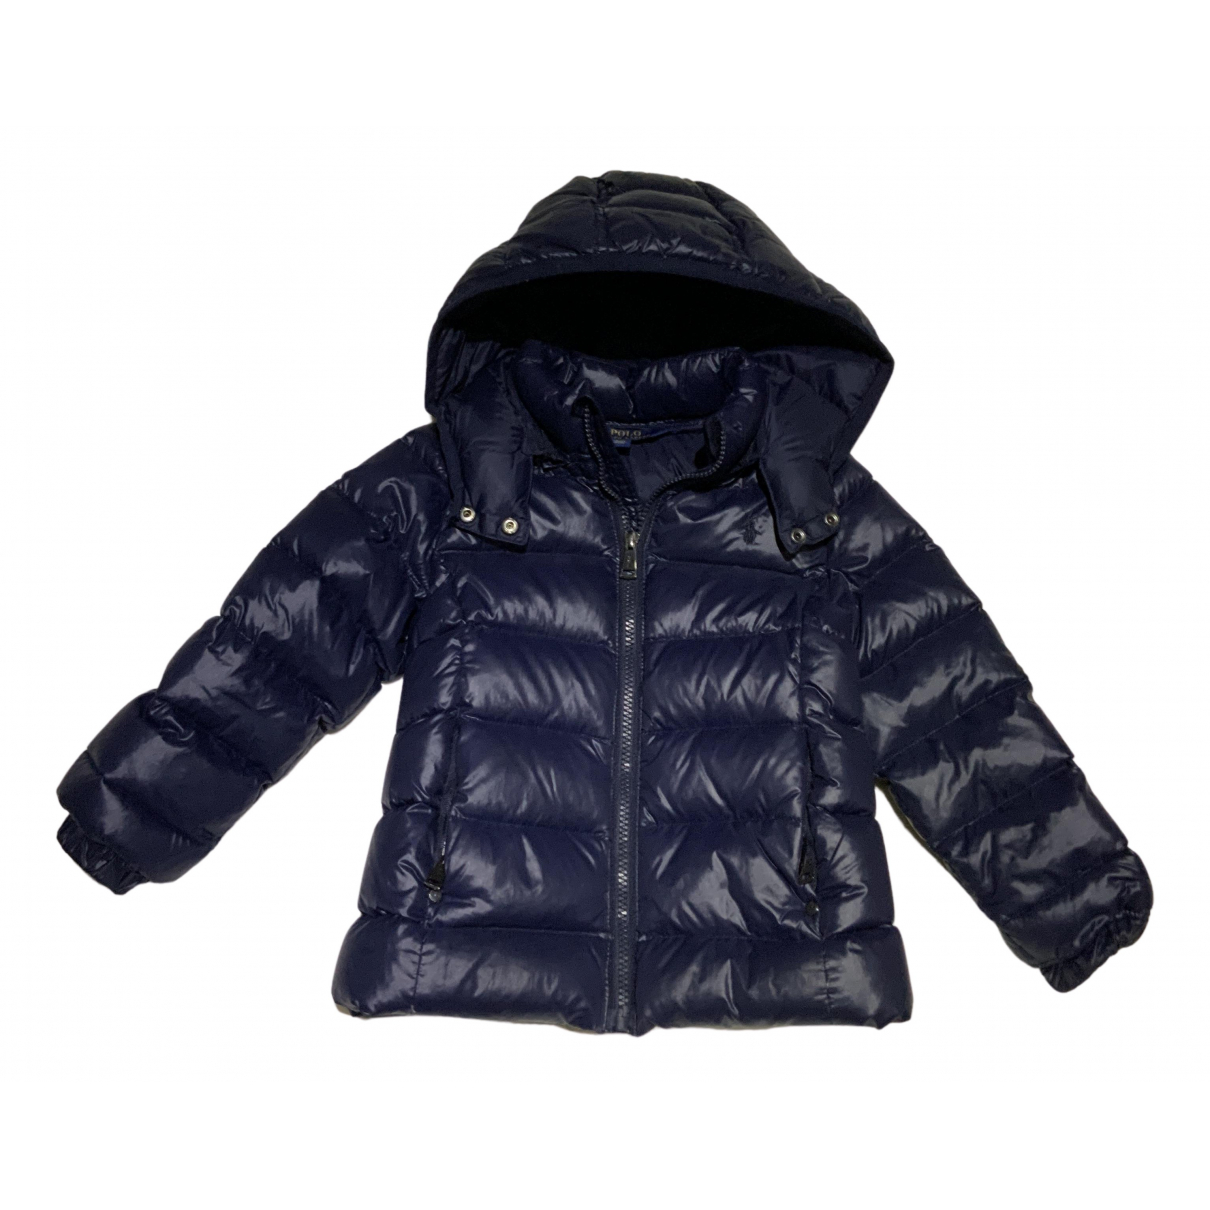 Polo Ralph Lauren N Navy jacket & coat for Kids 4 years - until 40 inches UK